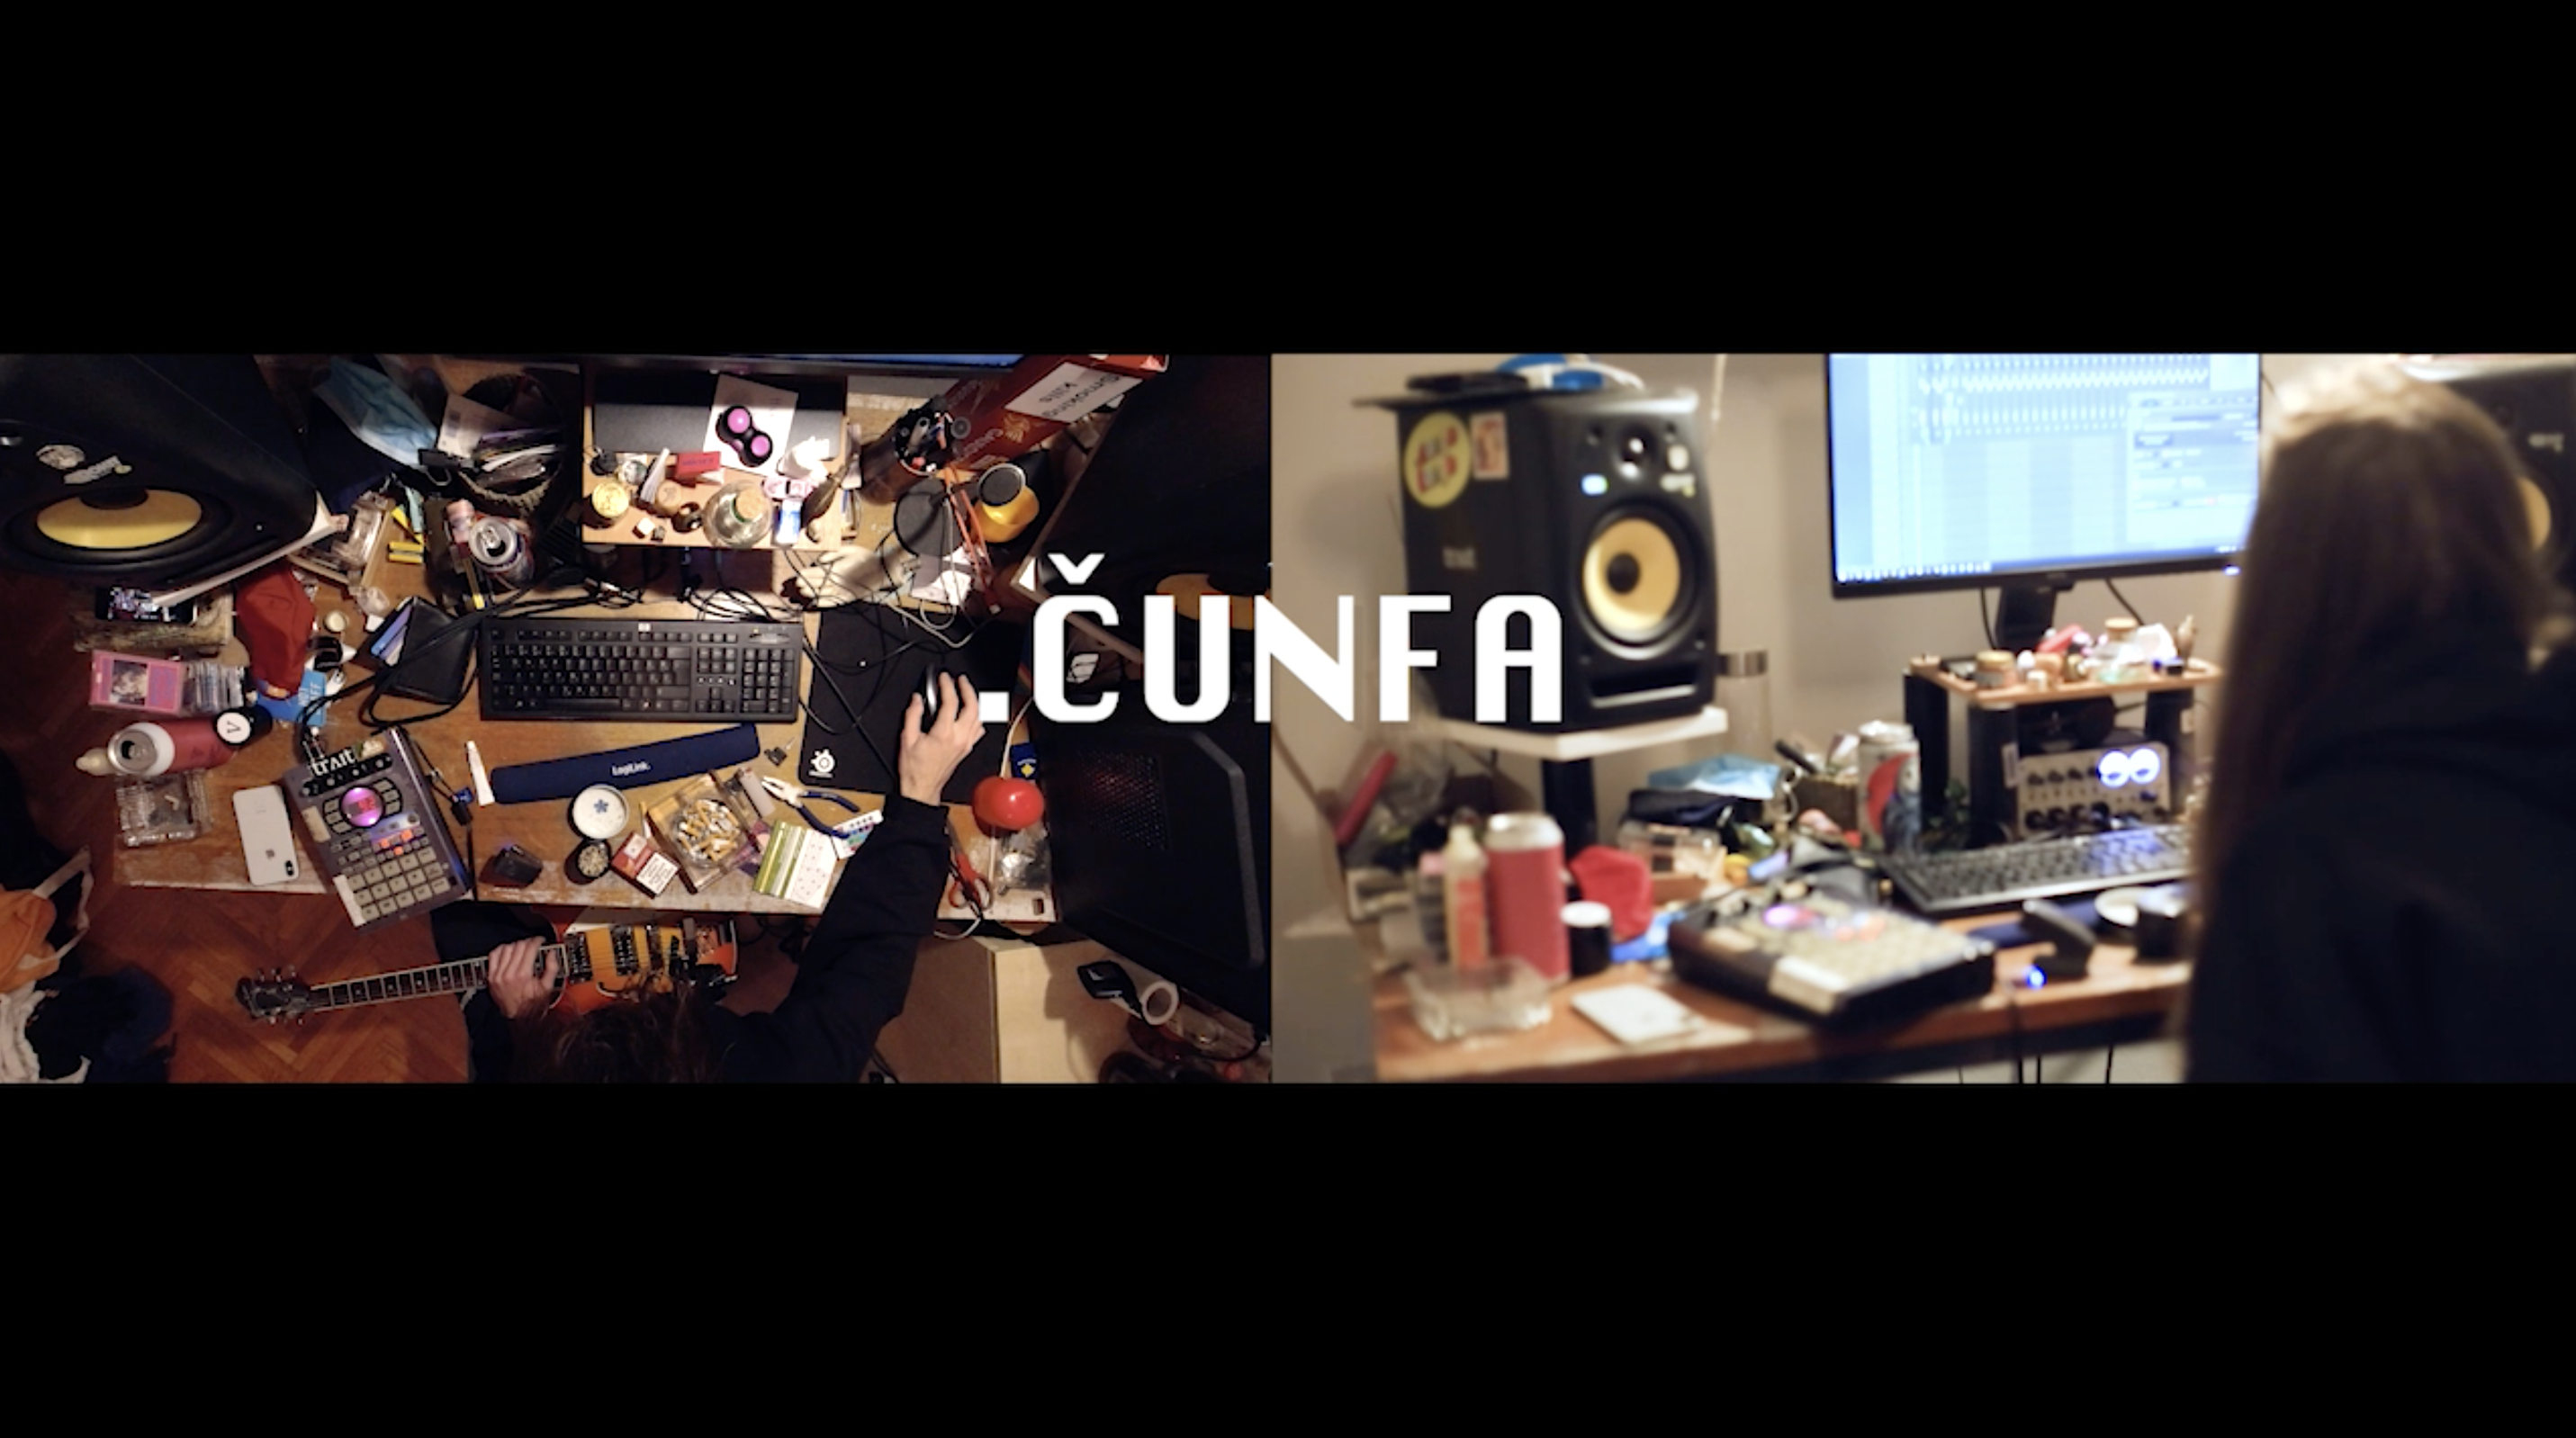 still shot from the room session with cunfa